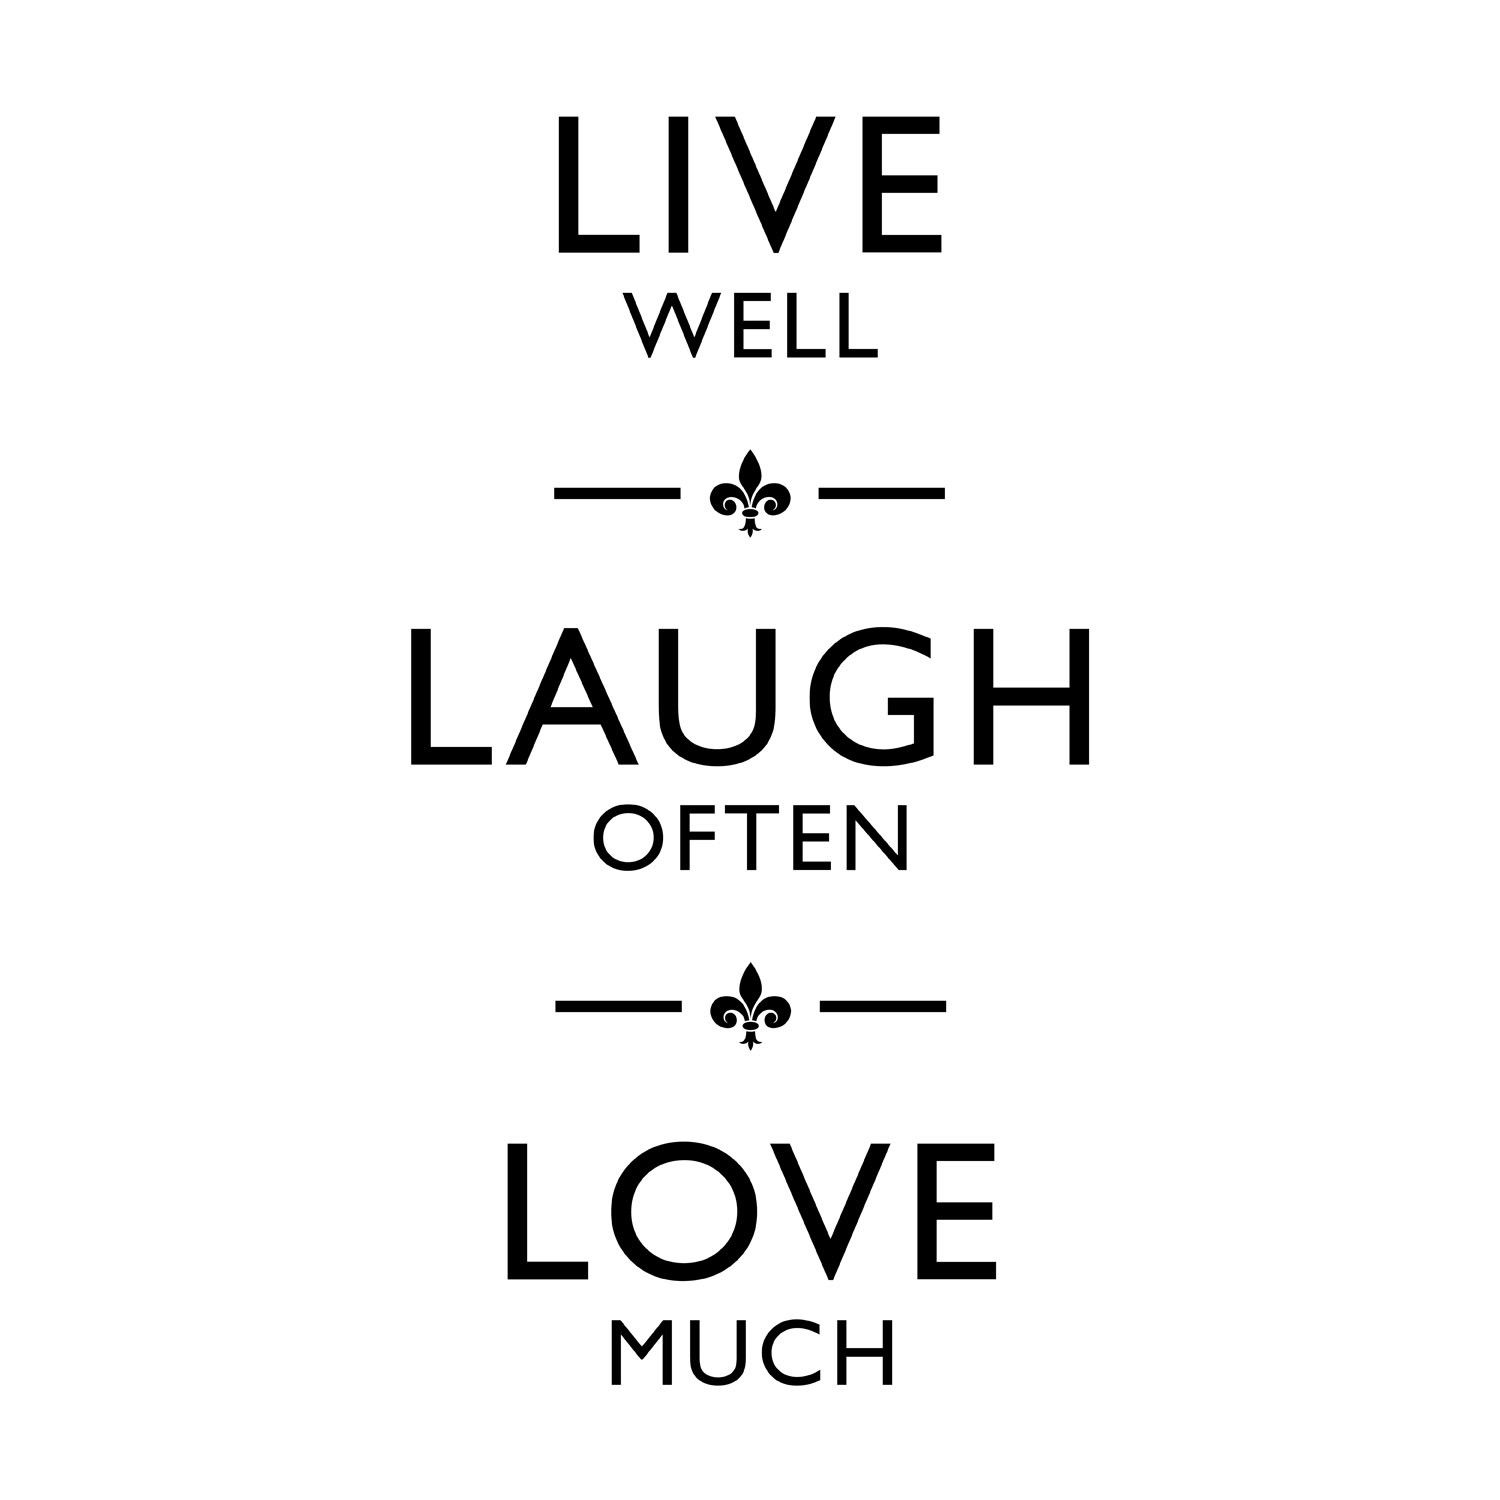 Live Love Laugh Quotes Impressive Love And Laughter Quotes Live Laugh Love Quote Wall  Advice To My